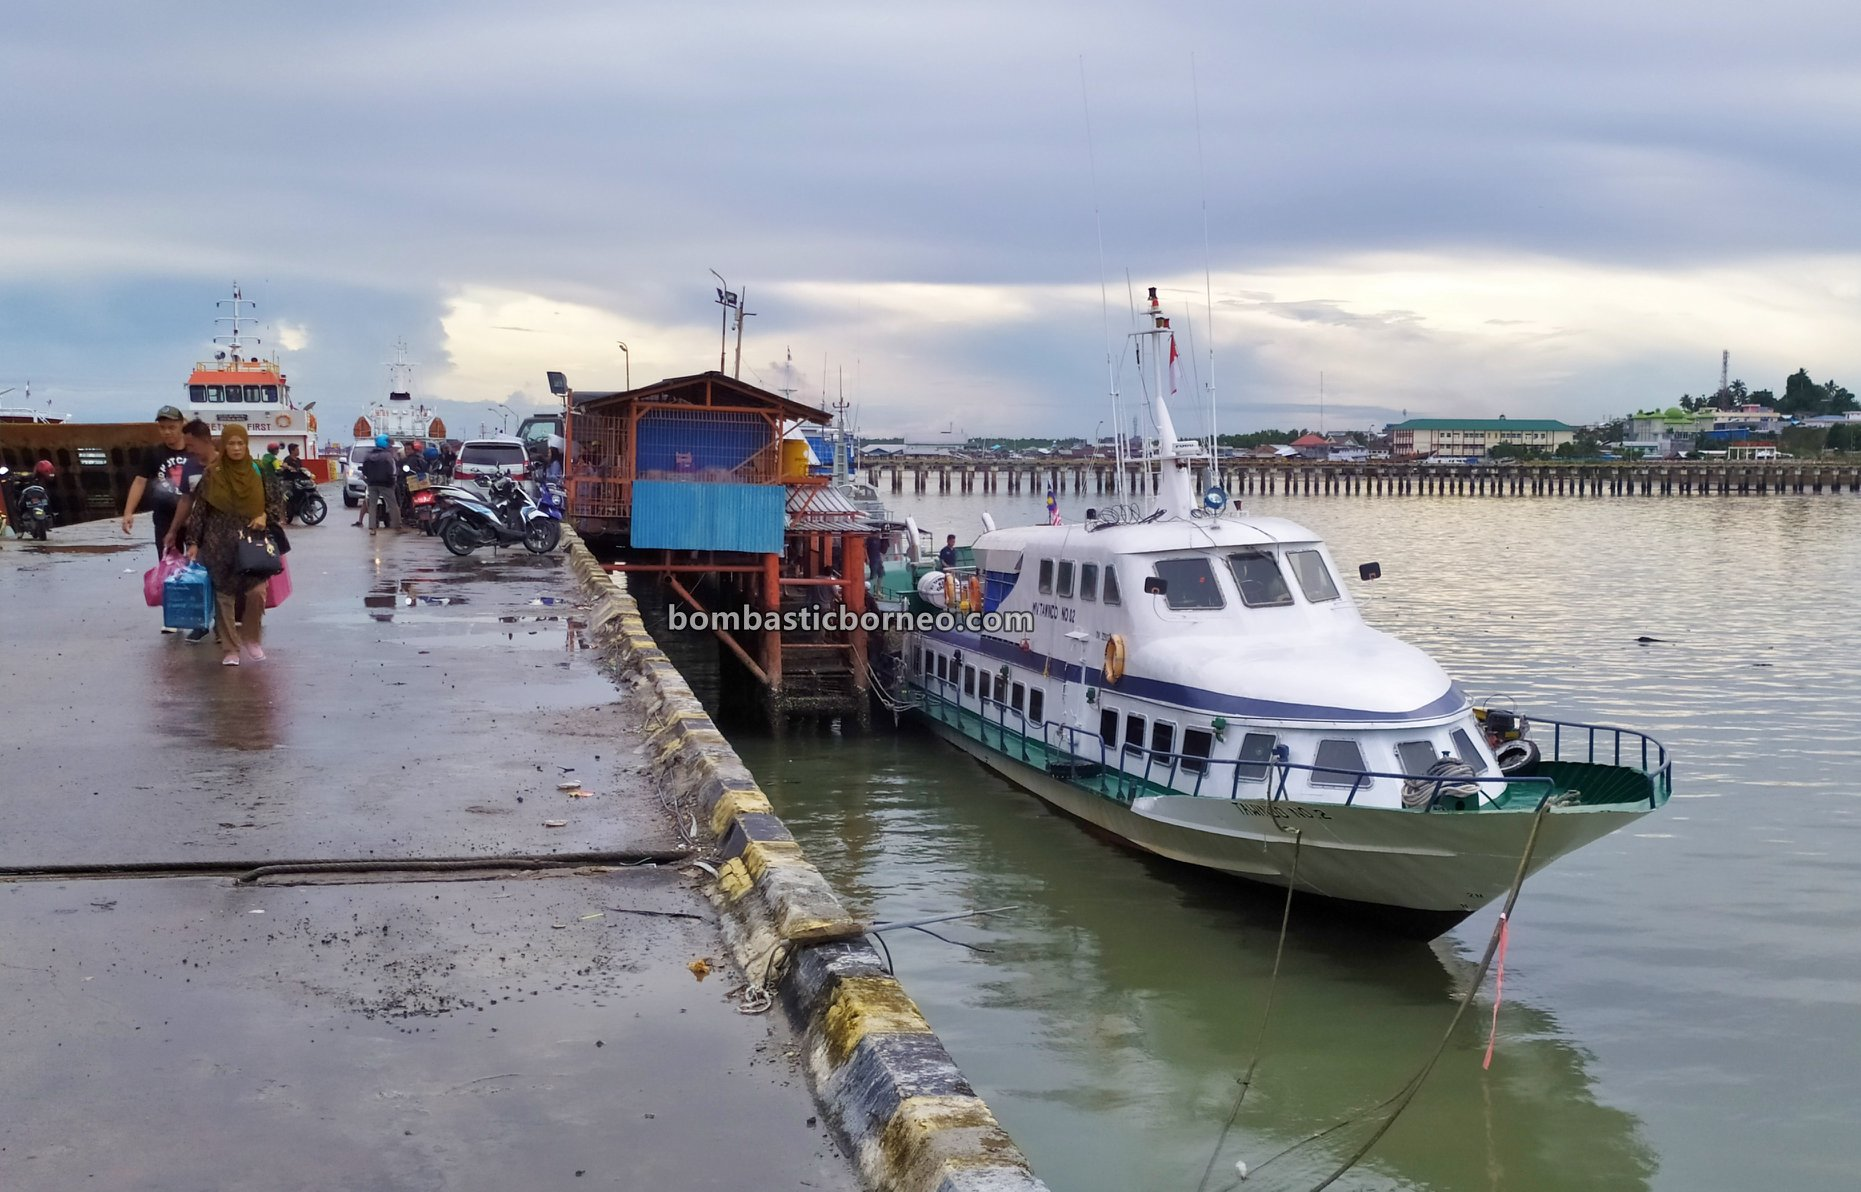 Ferry terminal, Express Boat Ride, backpackers, exploration, Kaltara, Pelabuhan Malundung, wharf, speedboat, Tourism, Transportation, travel guide, Trans Border, Borneo, 探索婆罗洲北加里曼丹, 打拉根岛轮渡码头